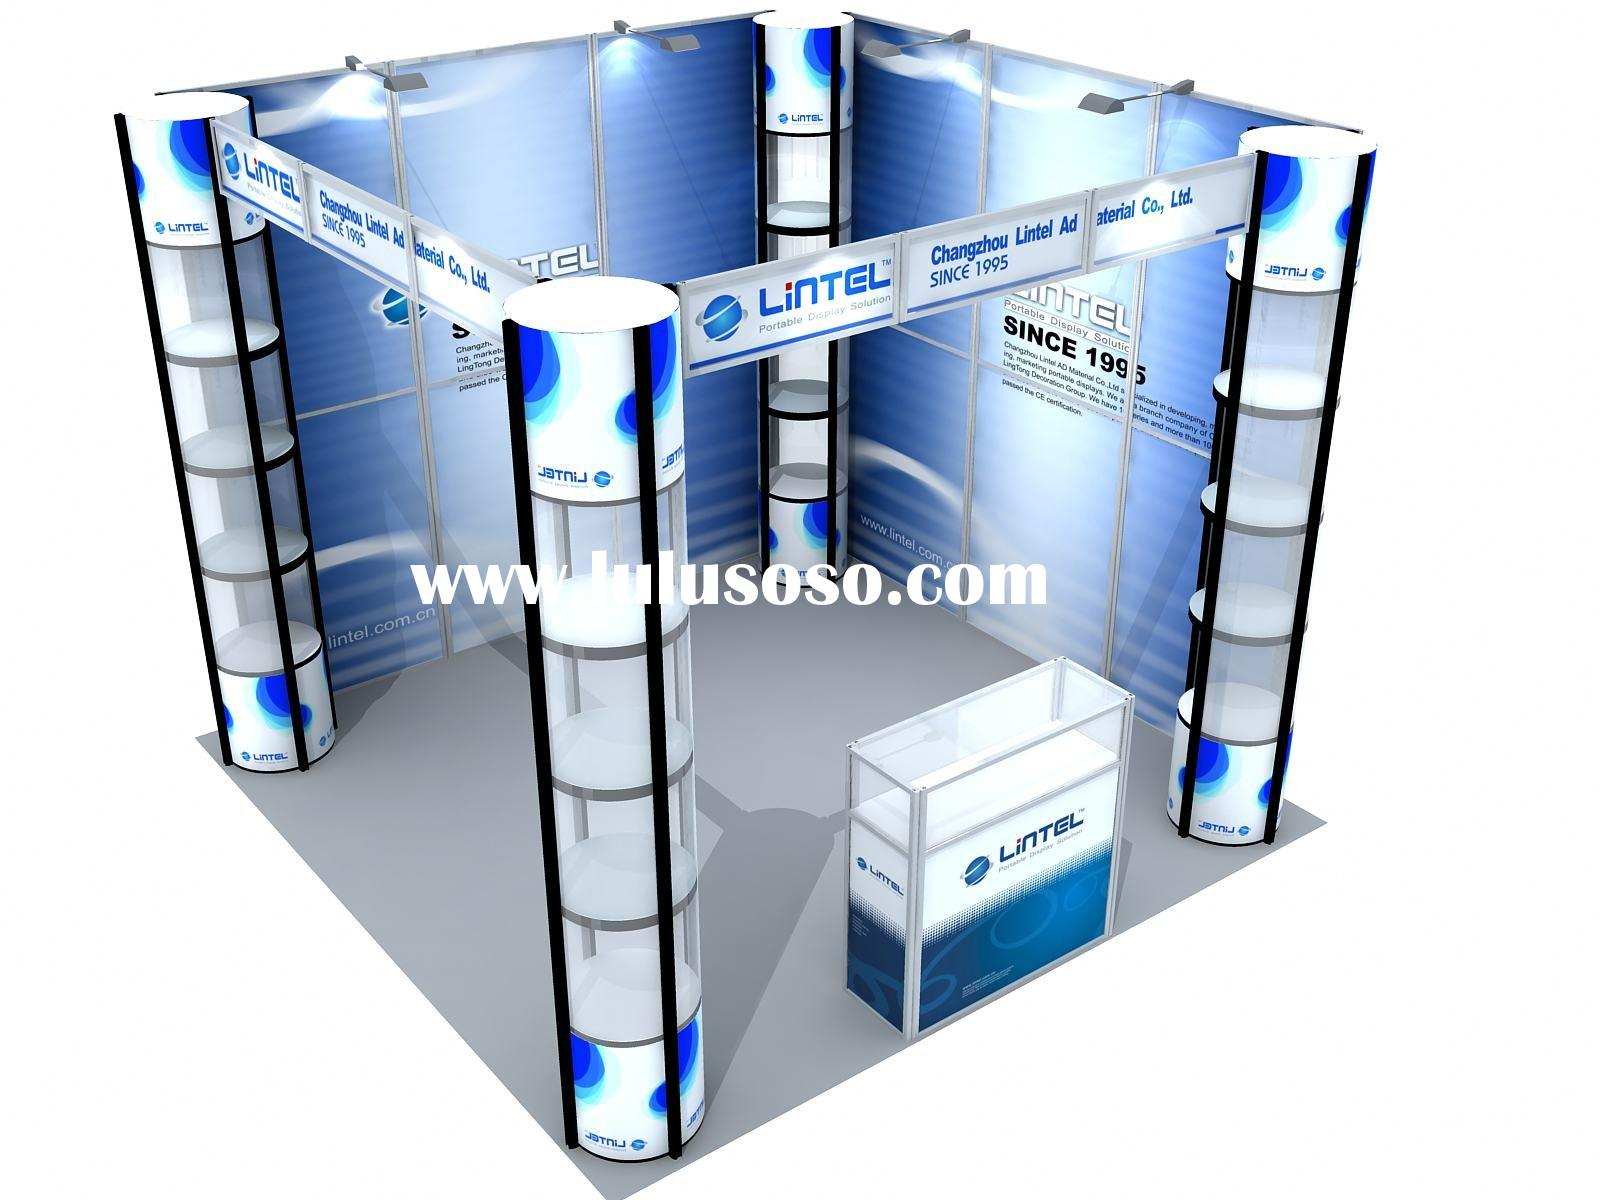 Portable Exhibition Booth Display 3*3m Standard Booth (LT-ZH004)